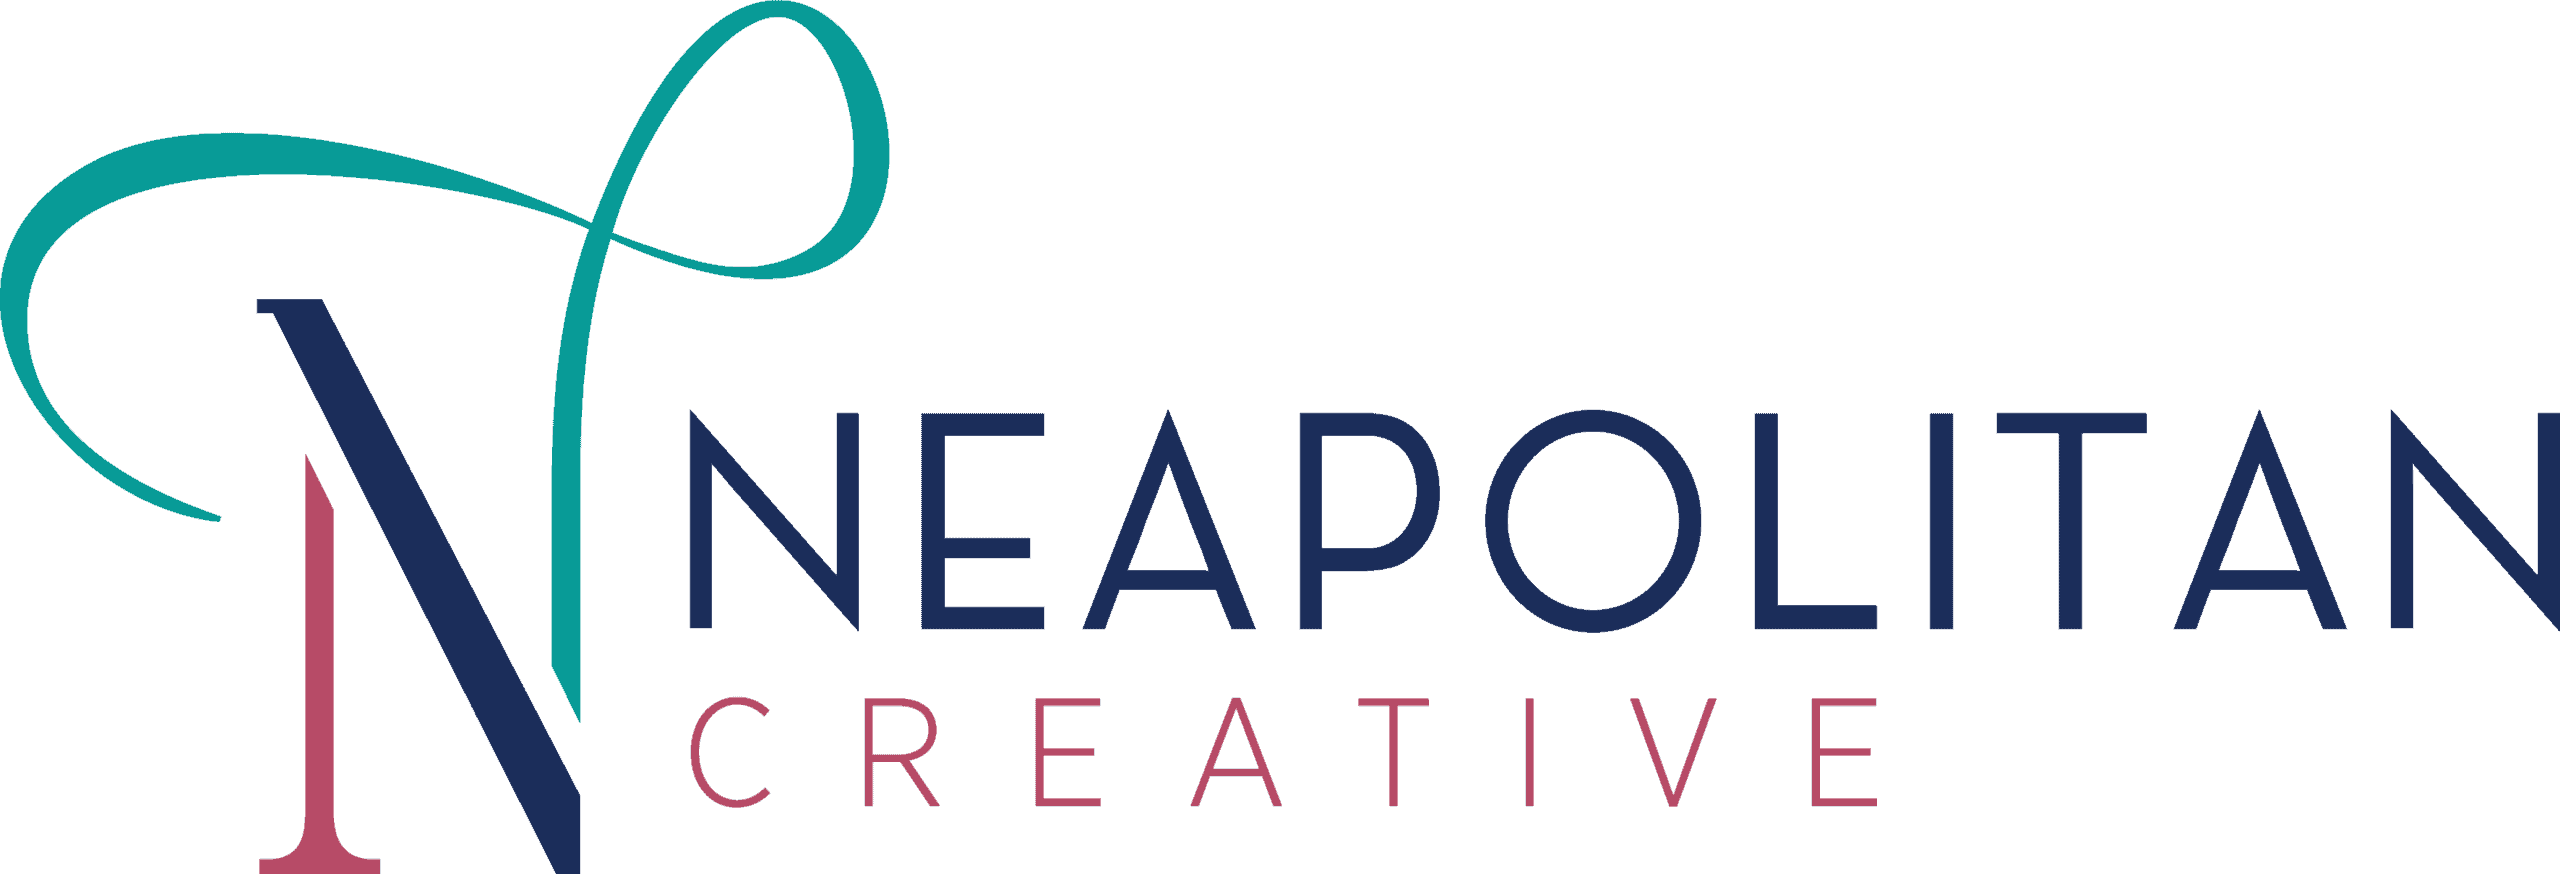 neapolitan-creative-logo-full-color-rgb